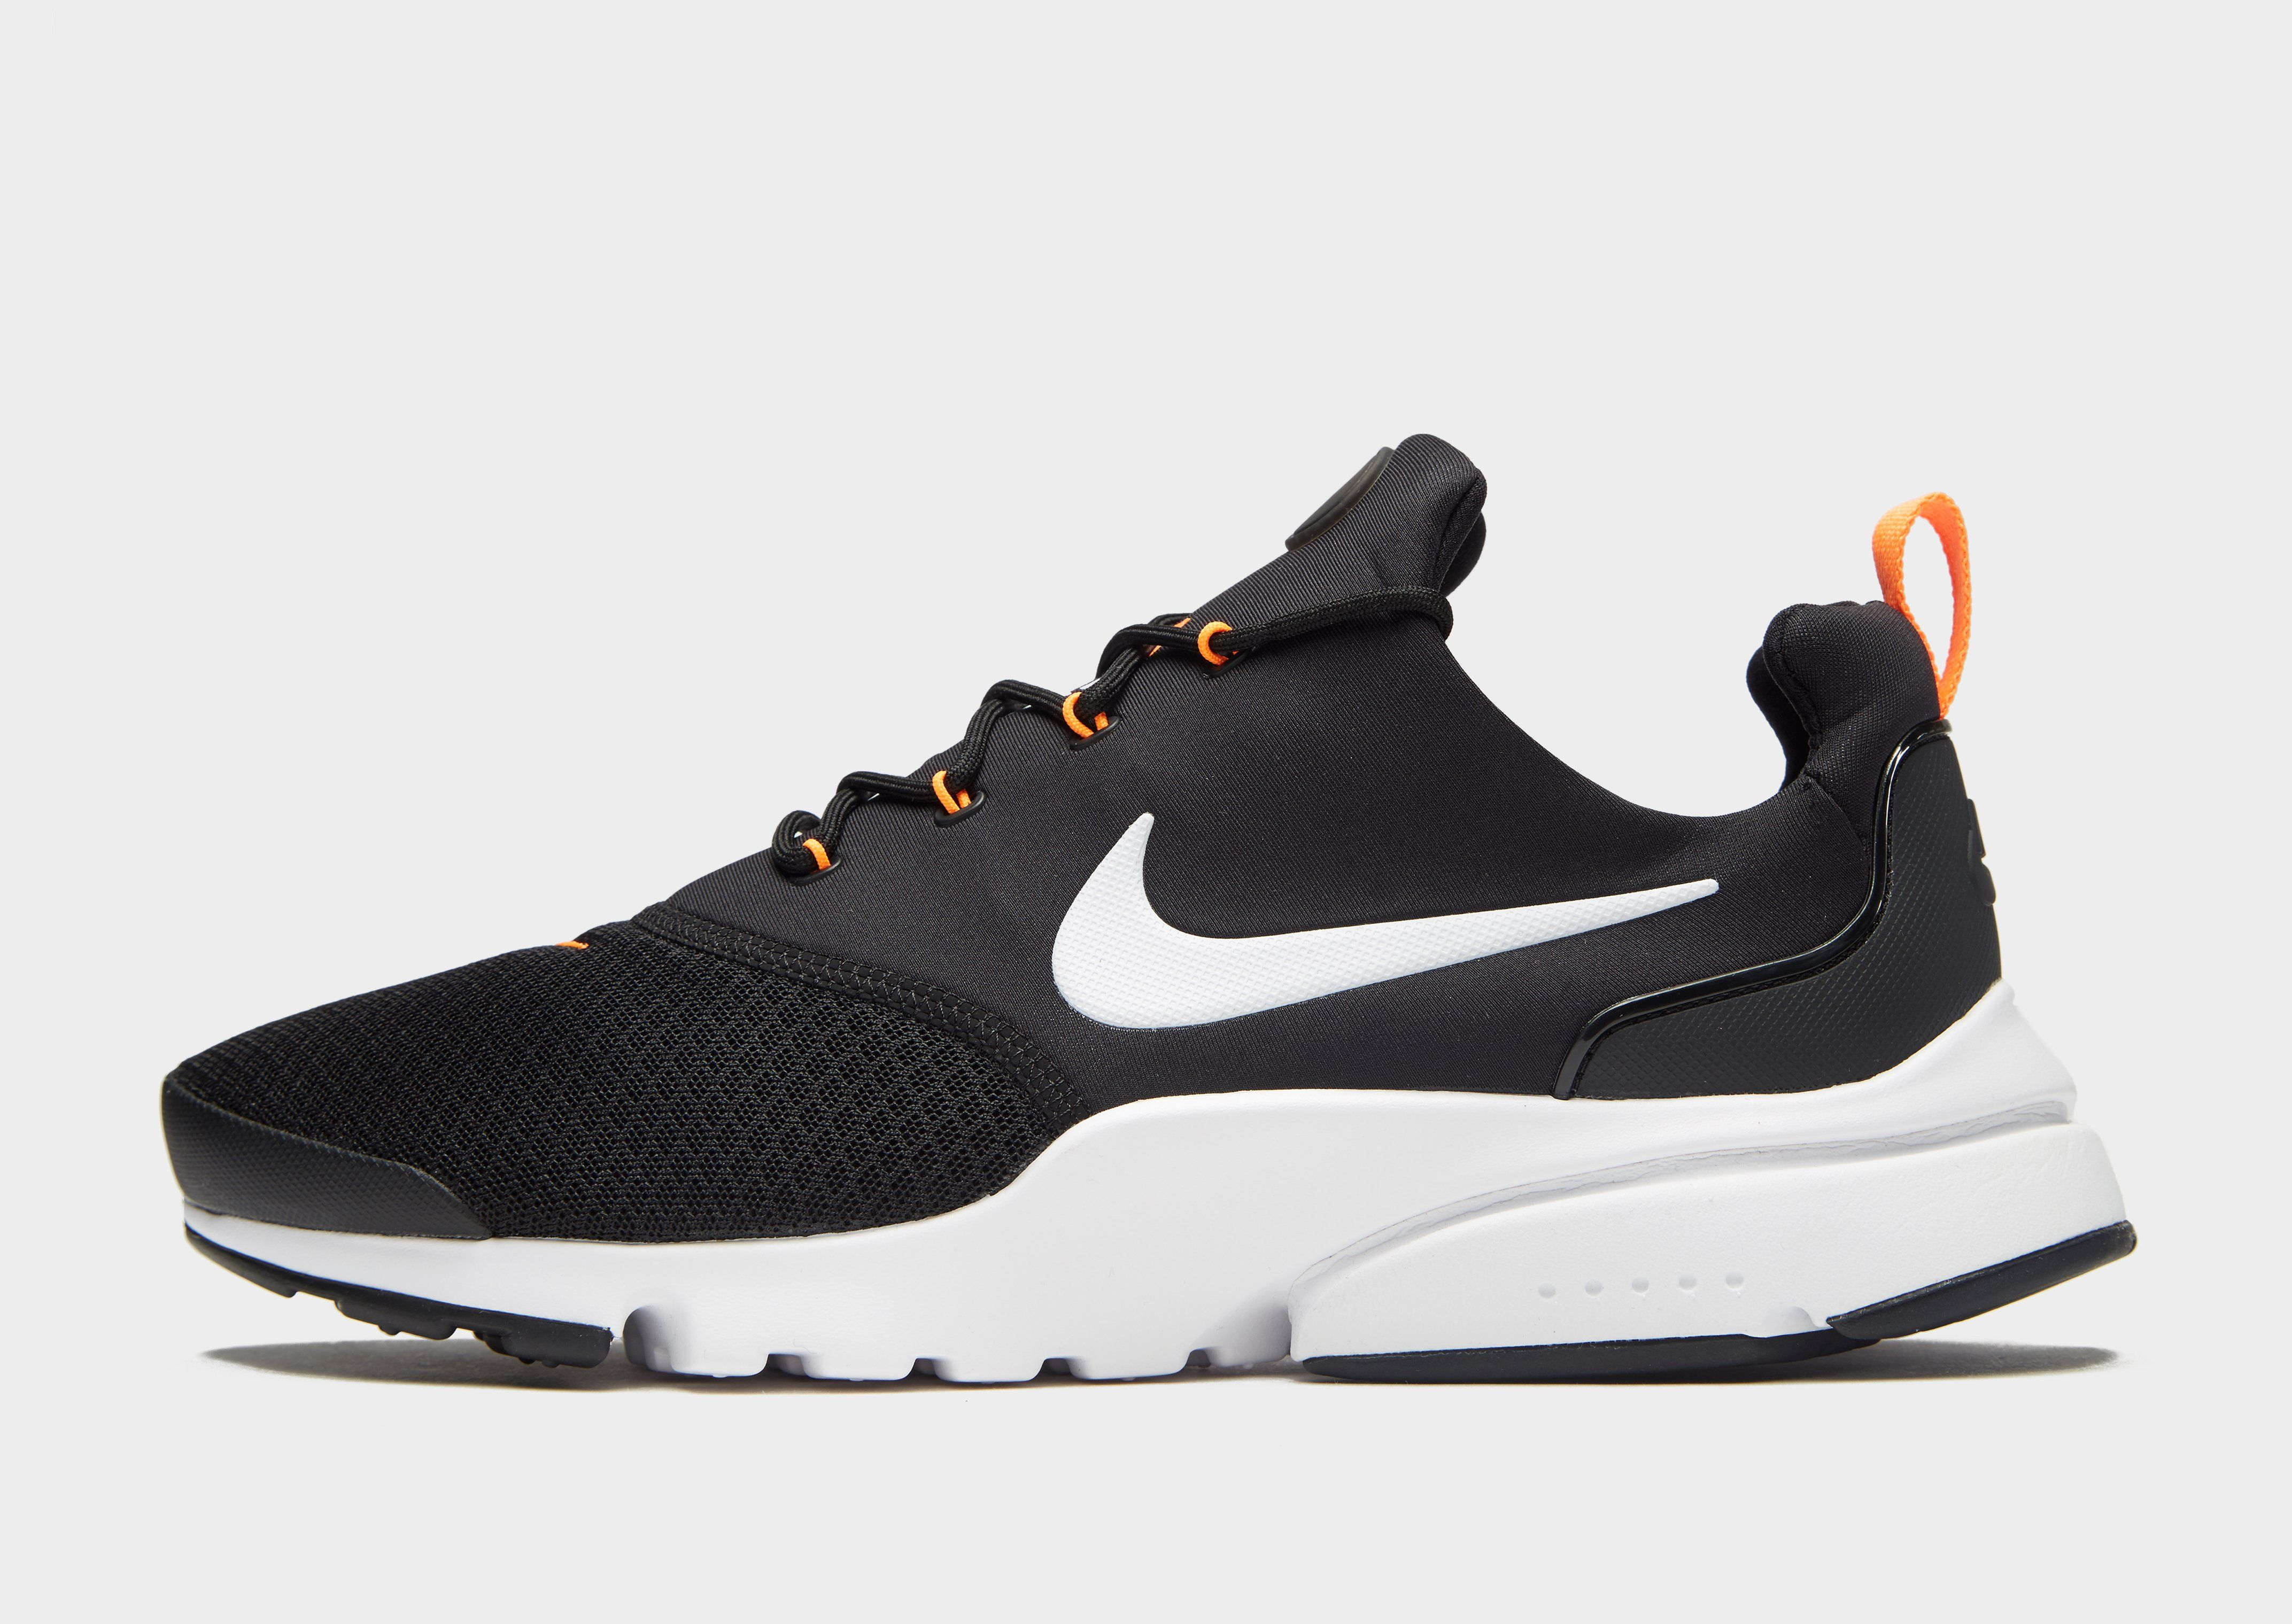 low cost 5110c d30f3 NIKE Air Presto Fly Just Do It   JD Sports